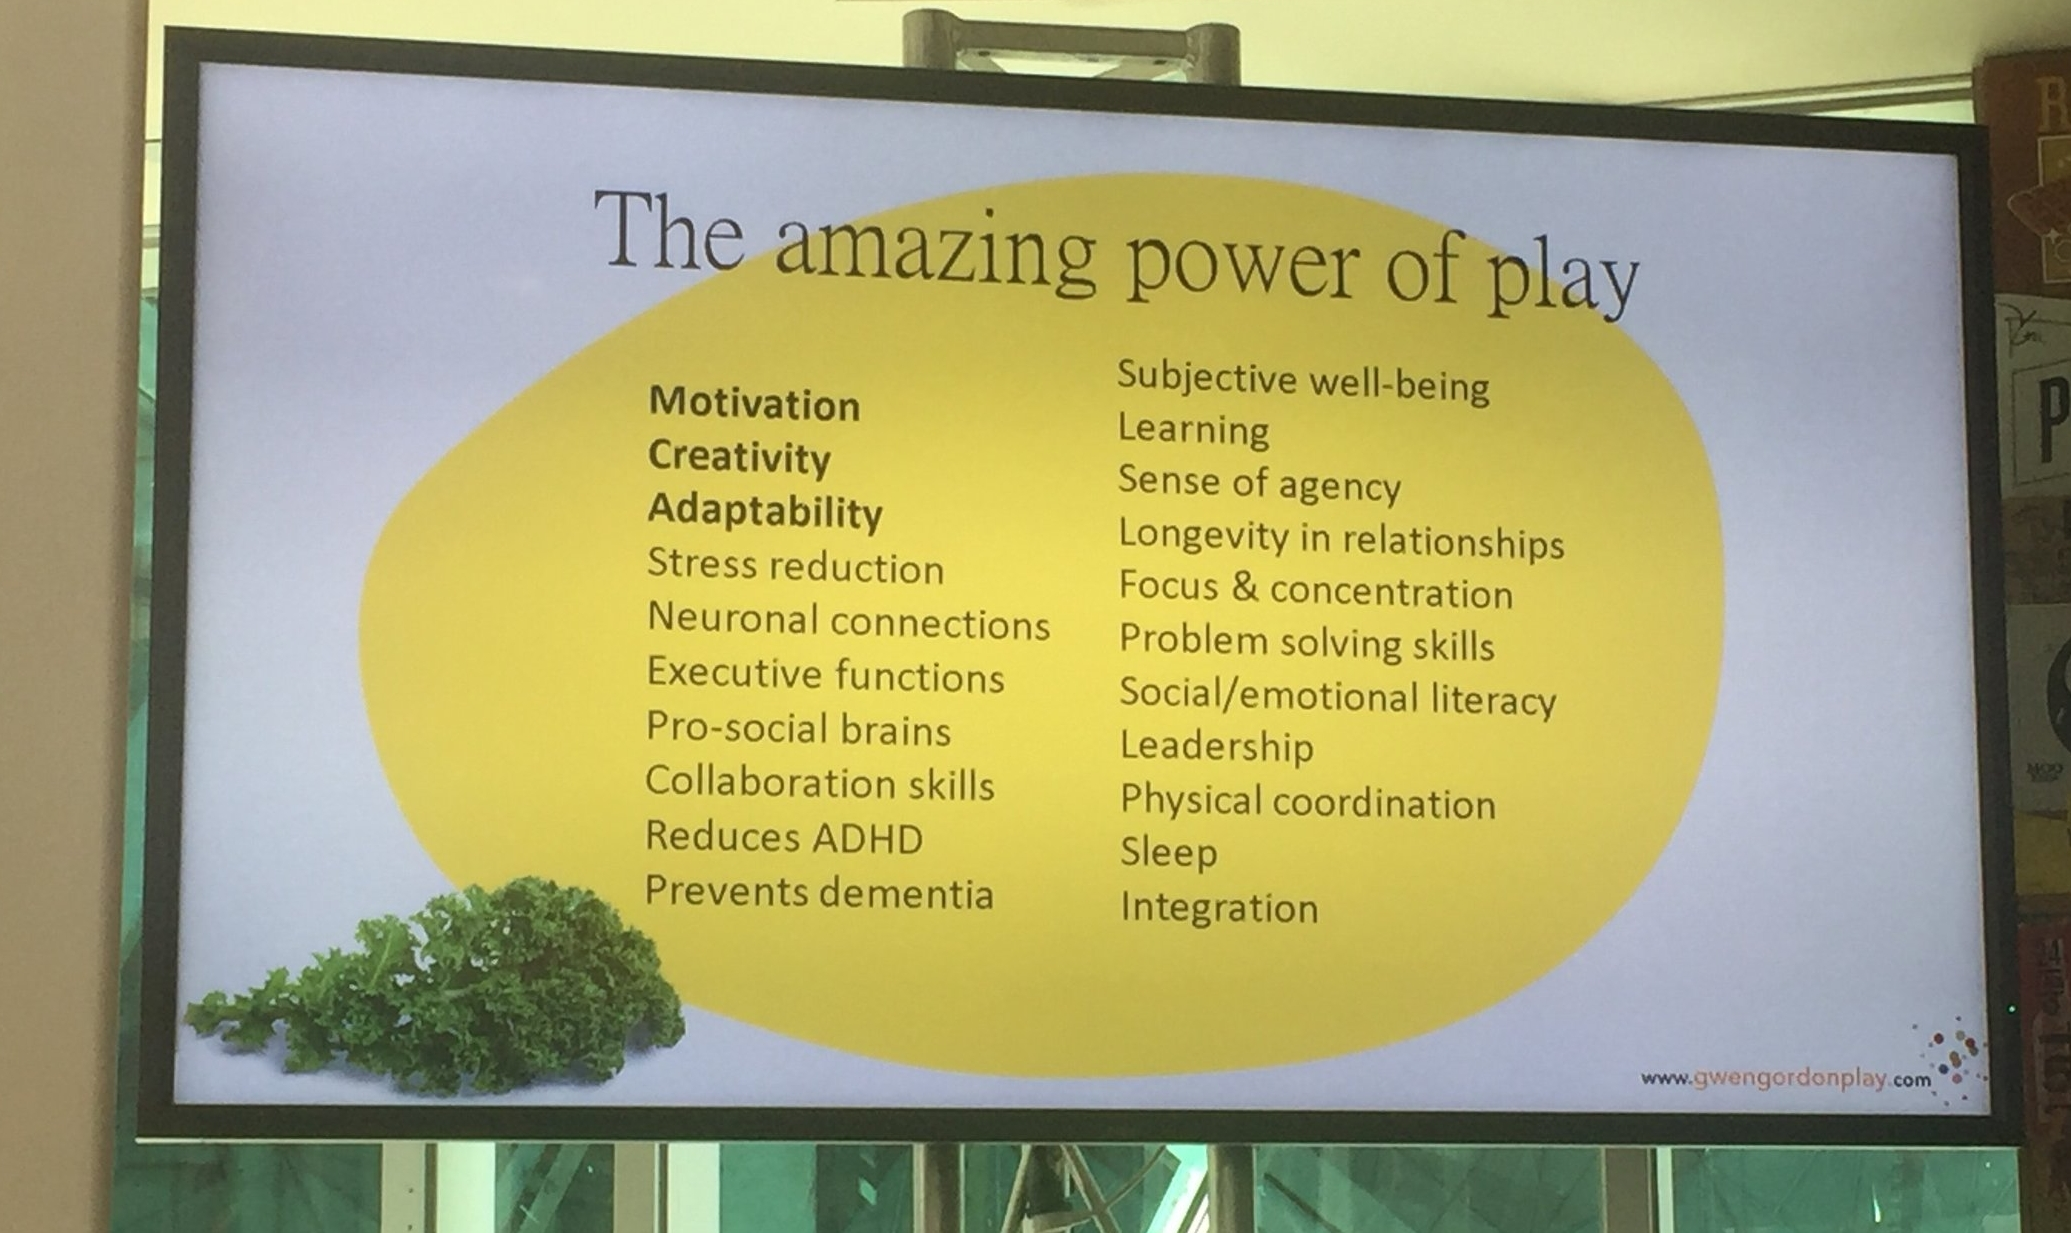 The Power of Play by Gwen Gordon